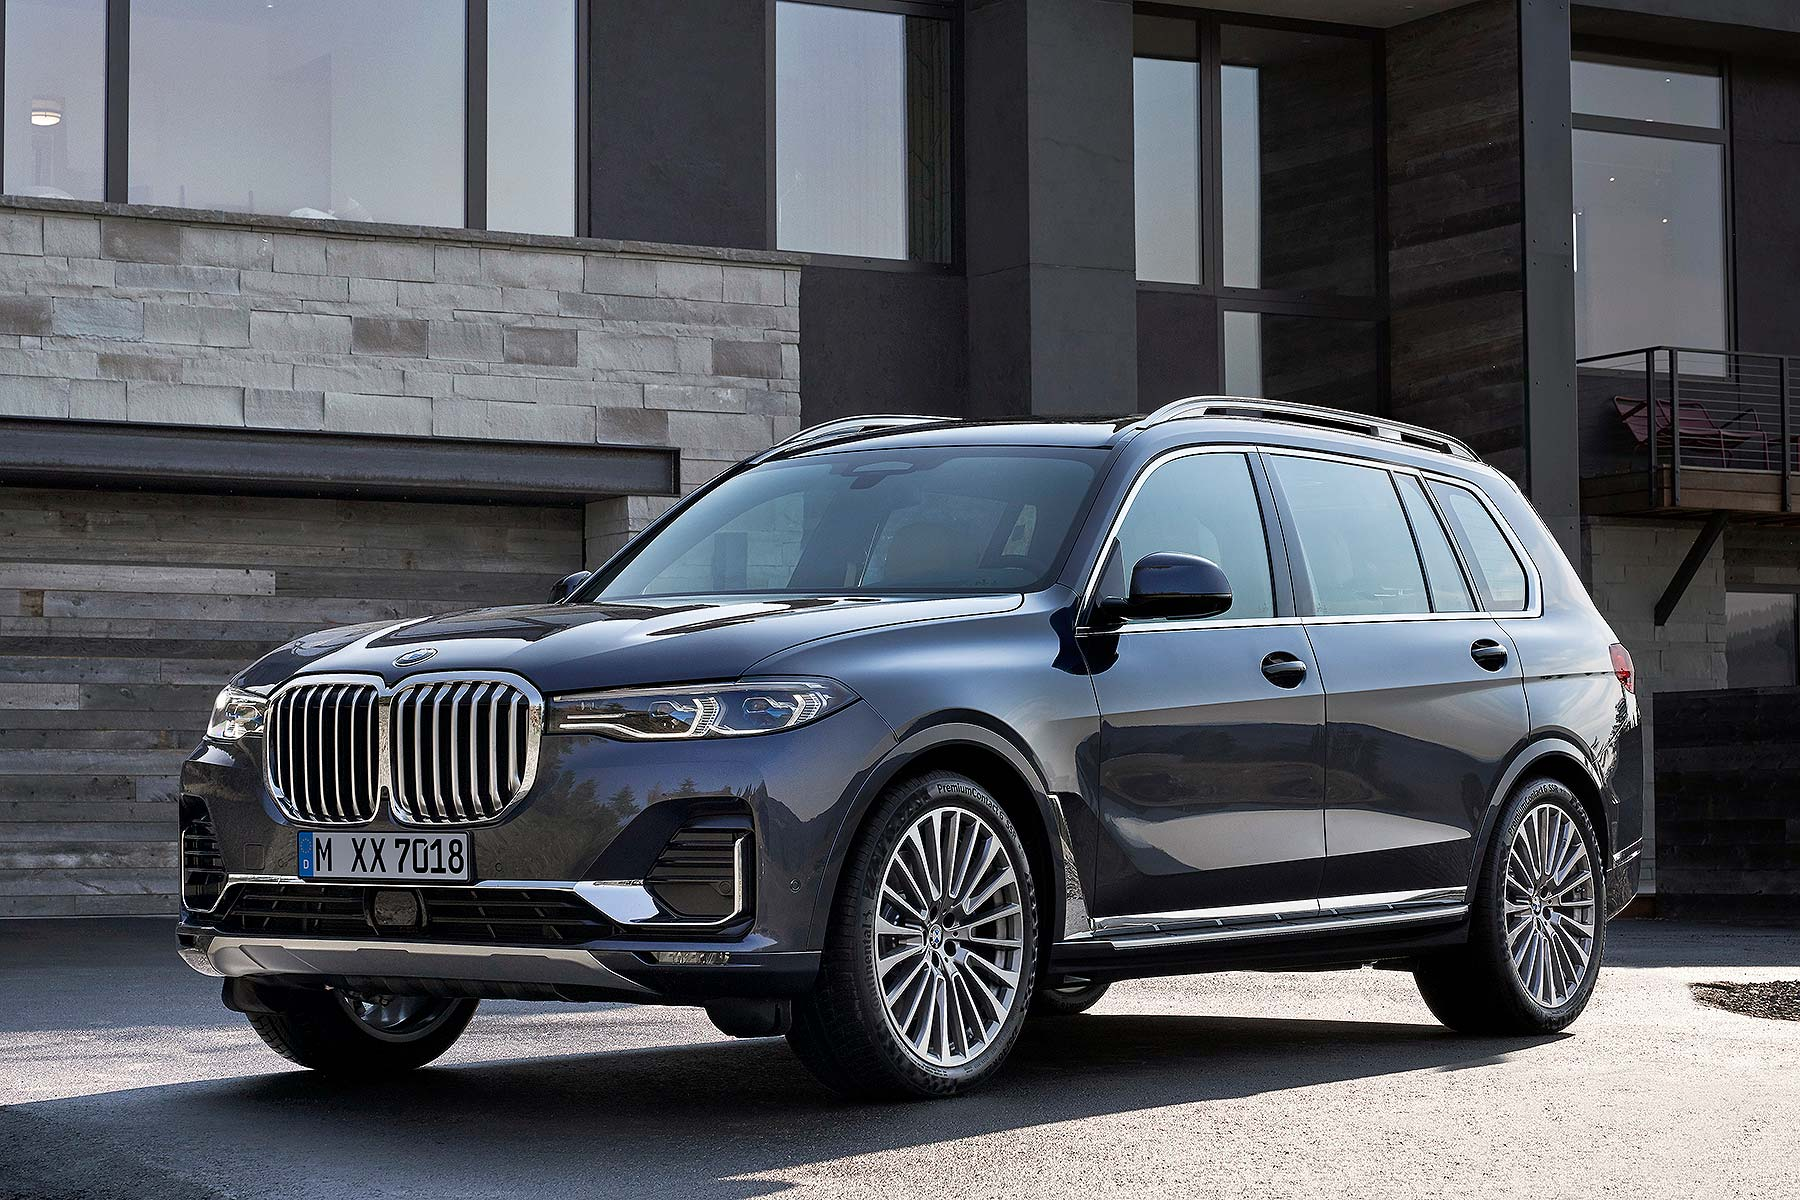 71 New 2019 BMW X7 Suv Style